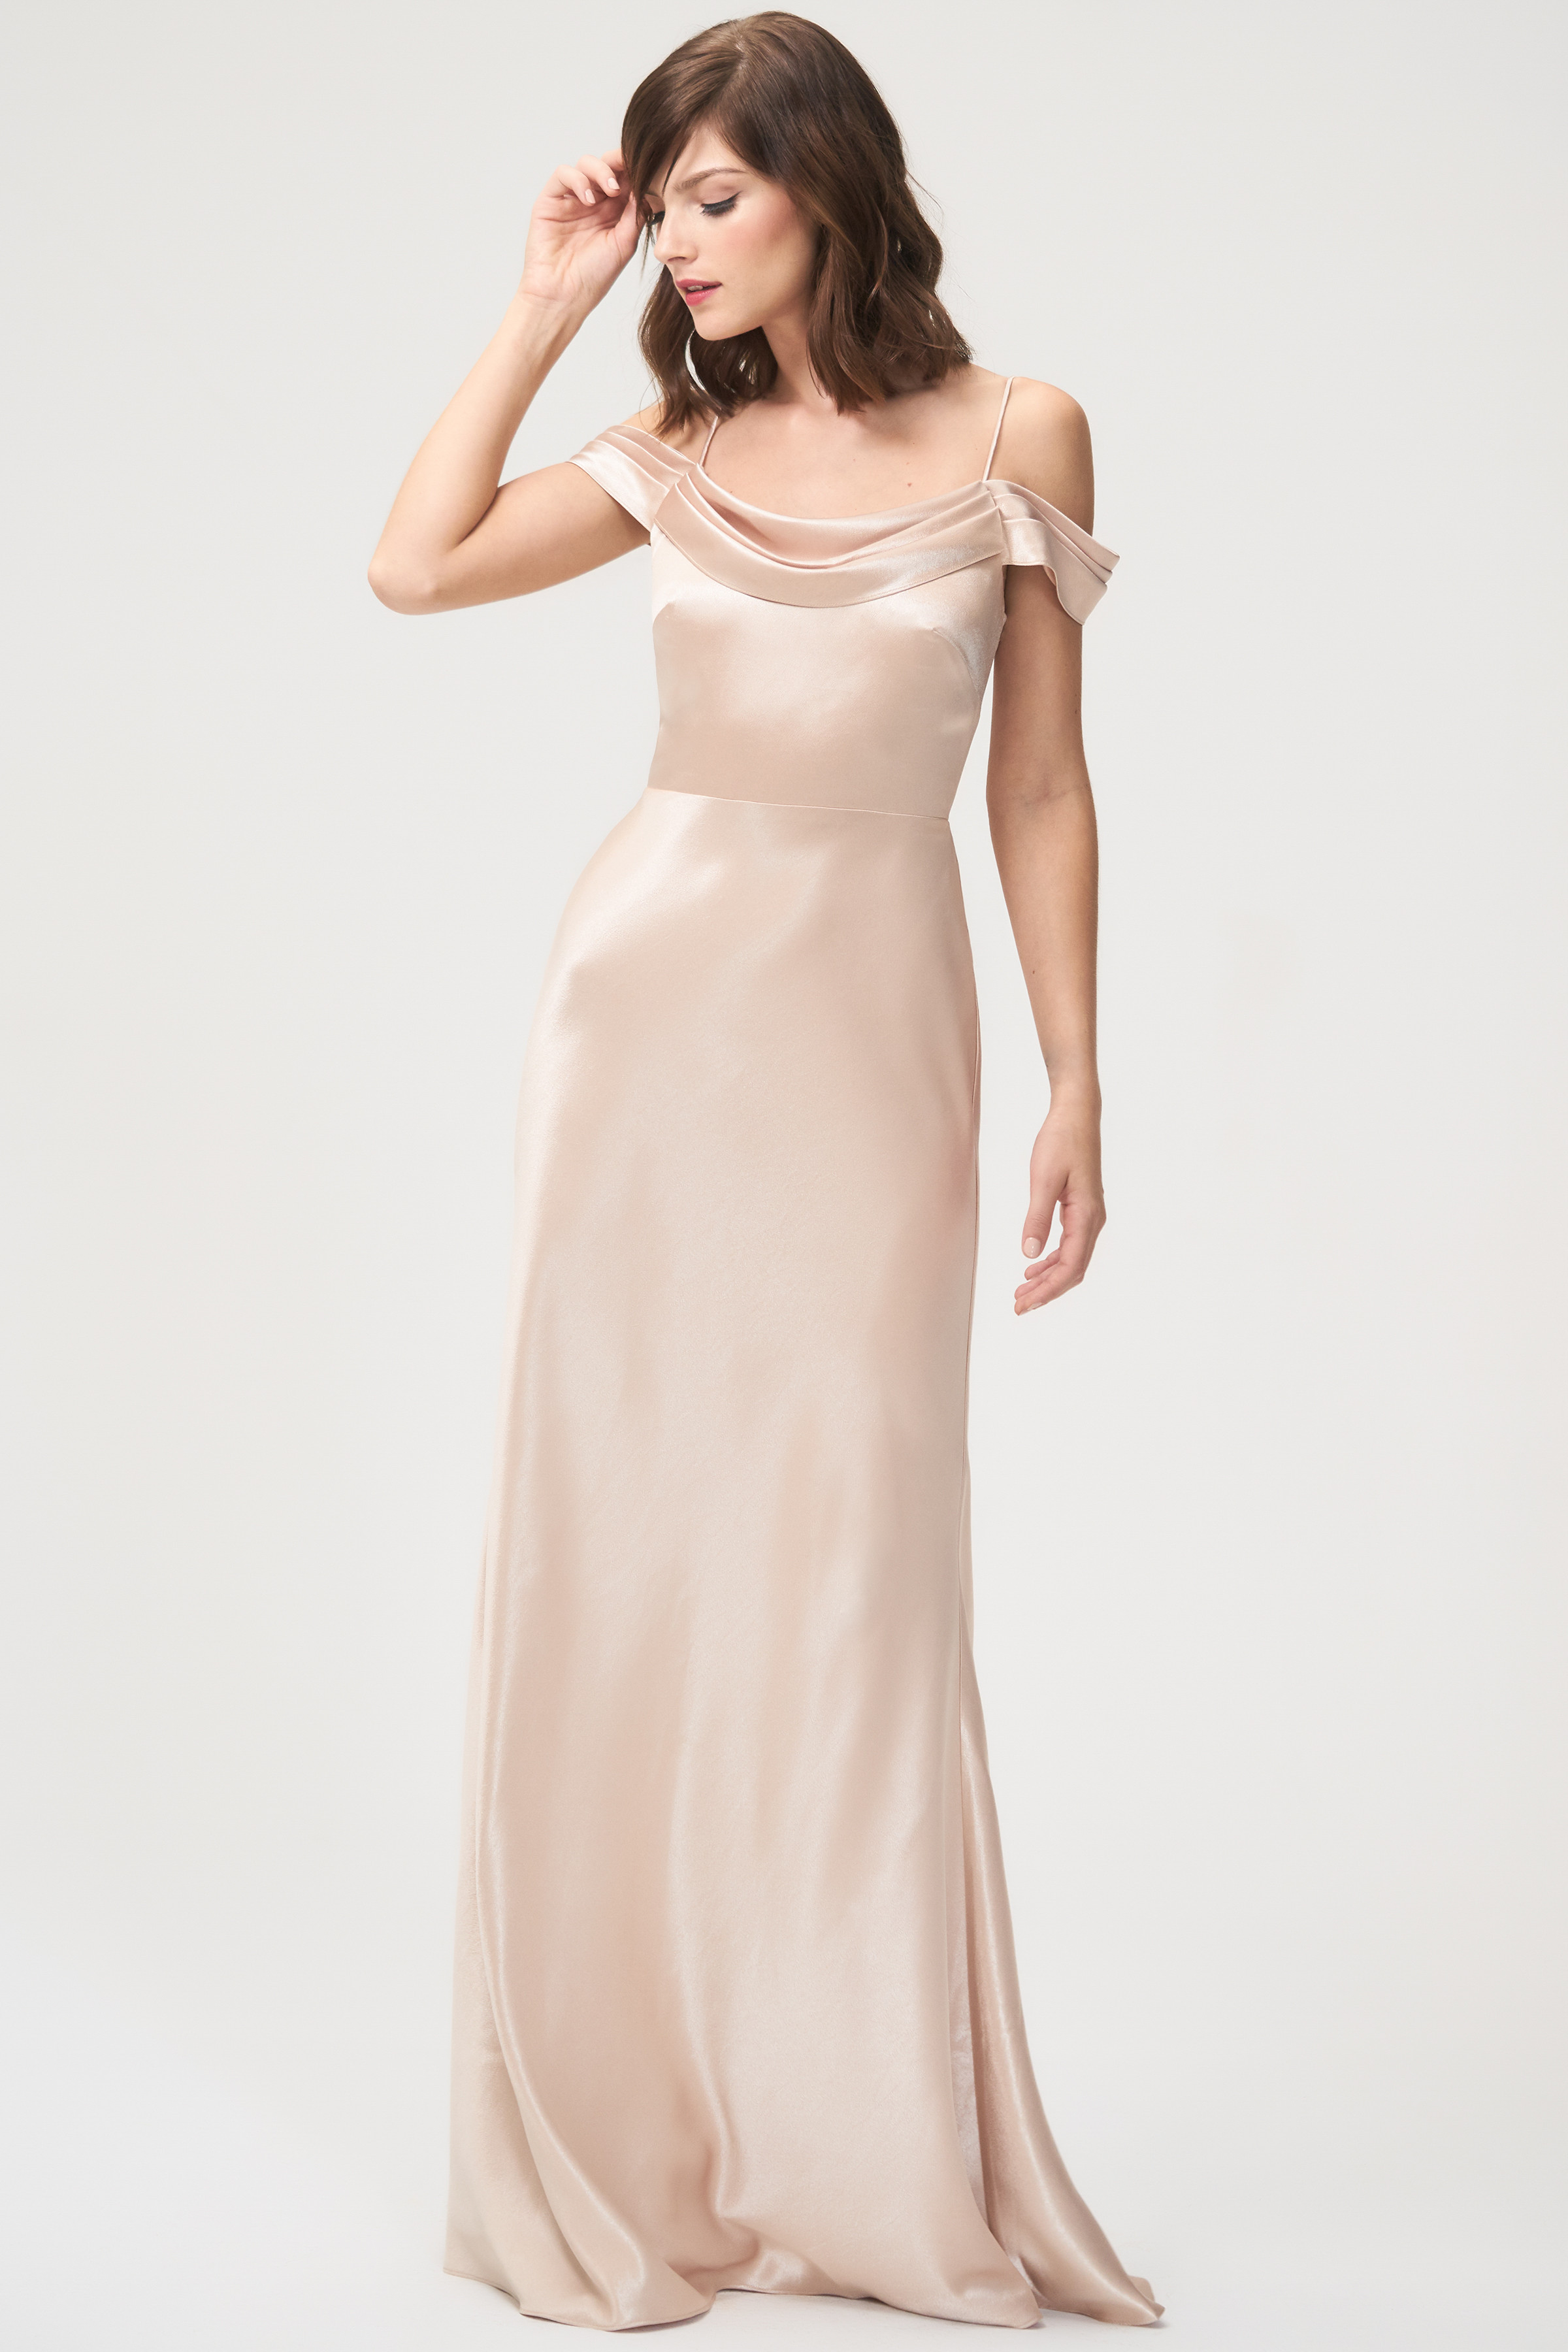 The Serena dress has a pleated cowl neck for a dramatically stunning effect with pleated and draped off-the-shoulder straps adding visual interest. The floor length bias-cut skirt creates a romantic, modern look. The dress is bodice lined with a center back zipper.